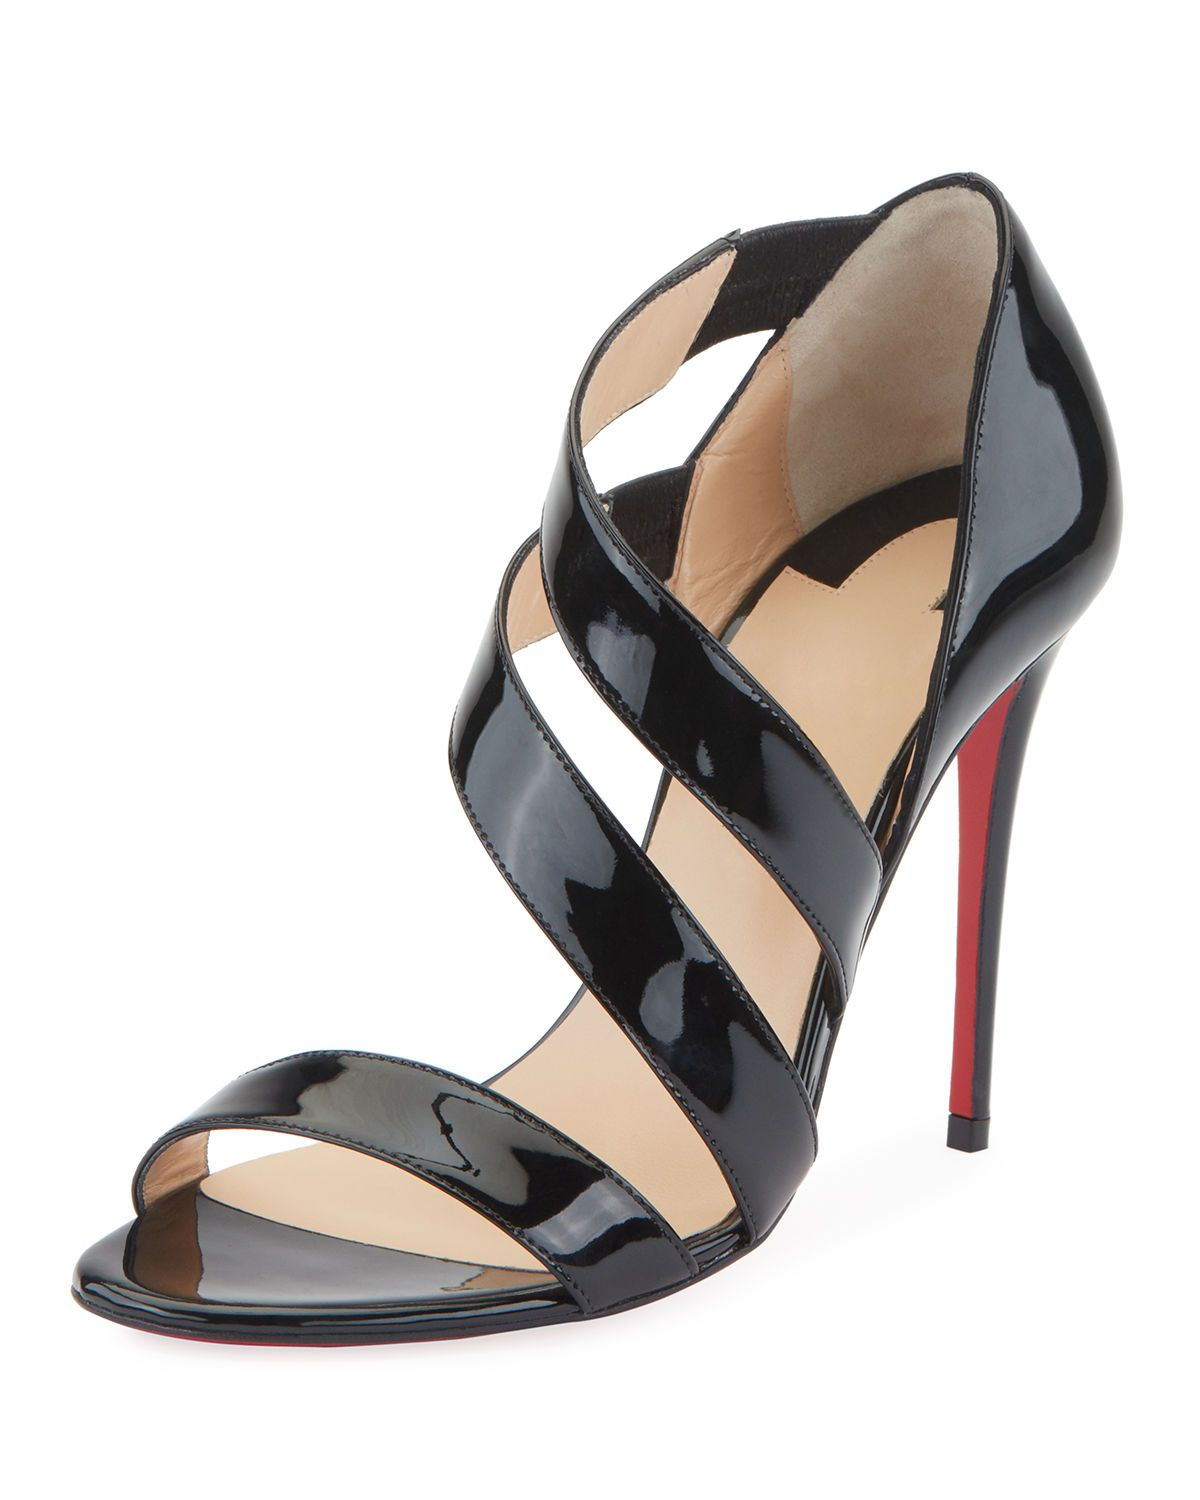 44aa206d73 Christian Louboutin World Copine Red Sole Pumps in 2019 | Louboutin ...